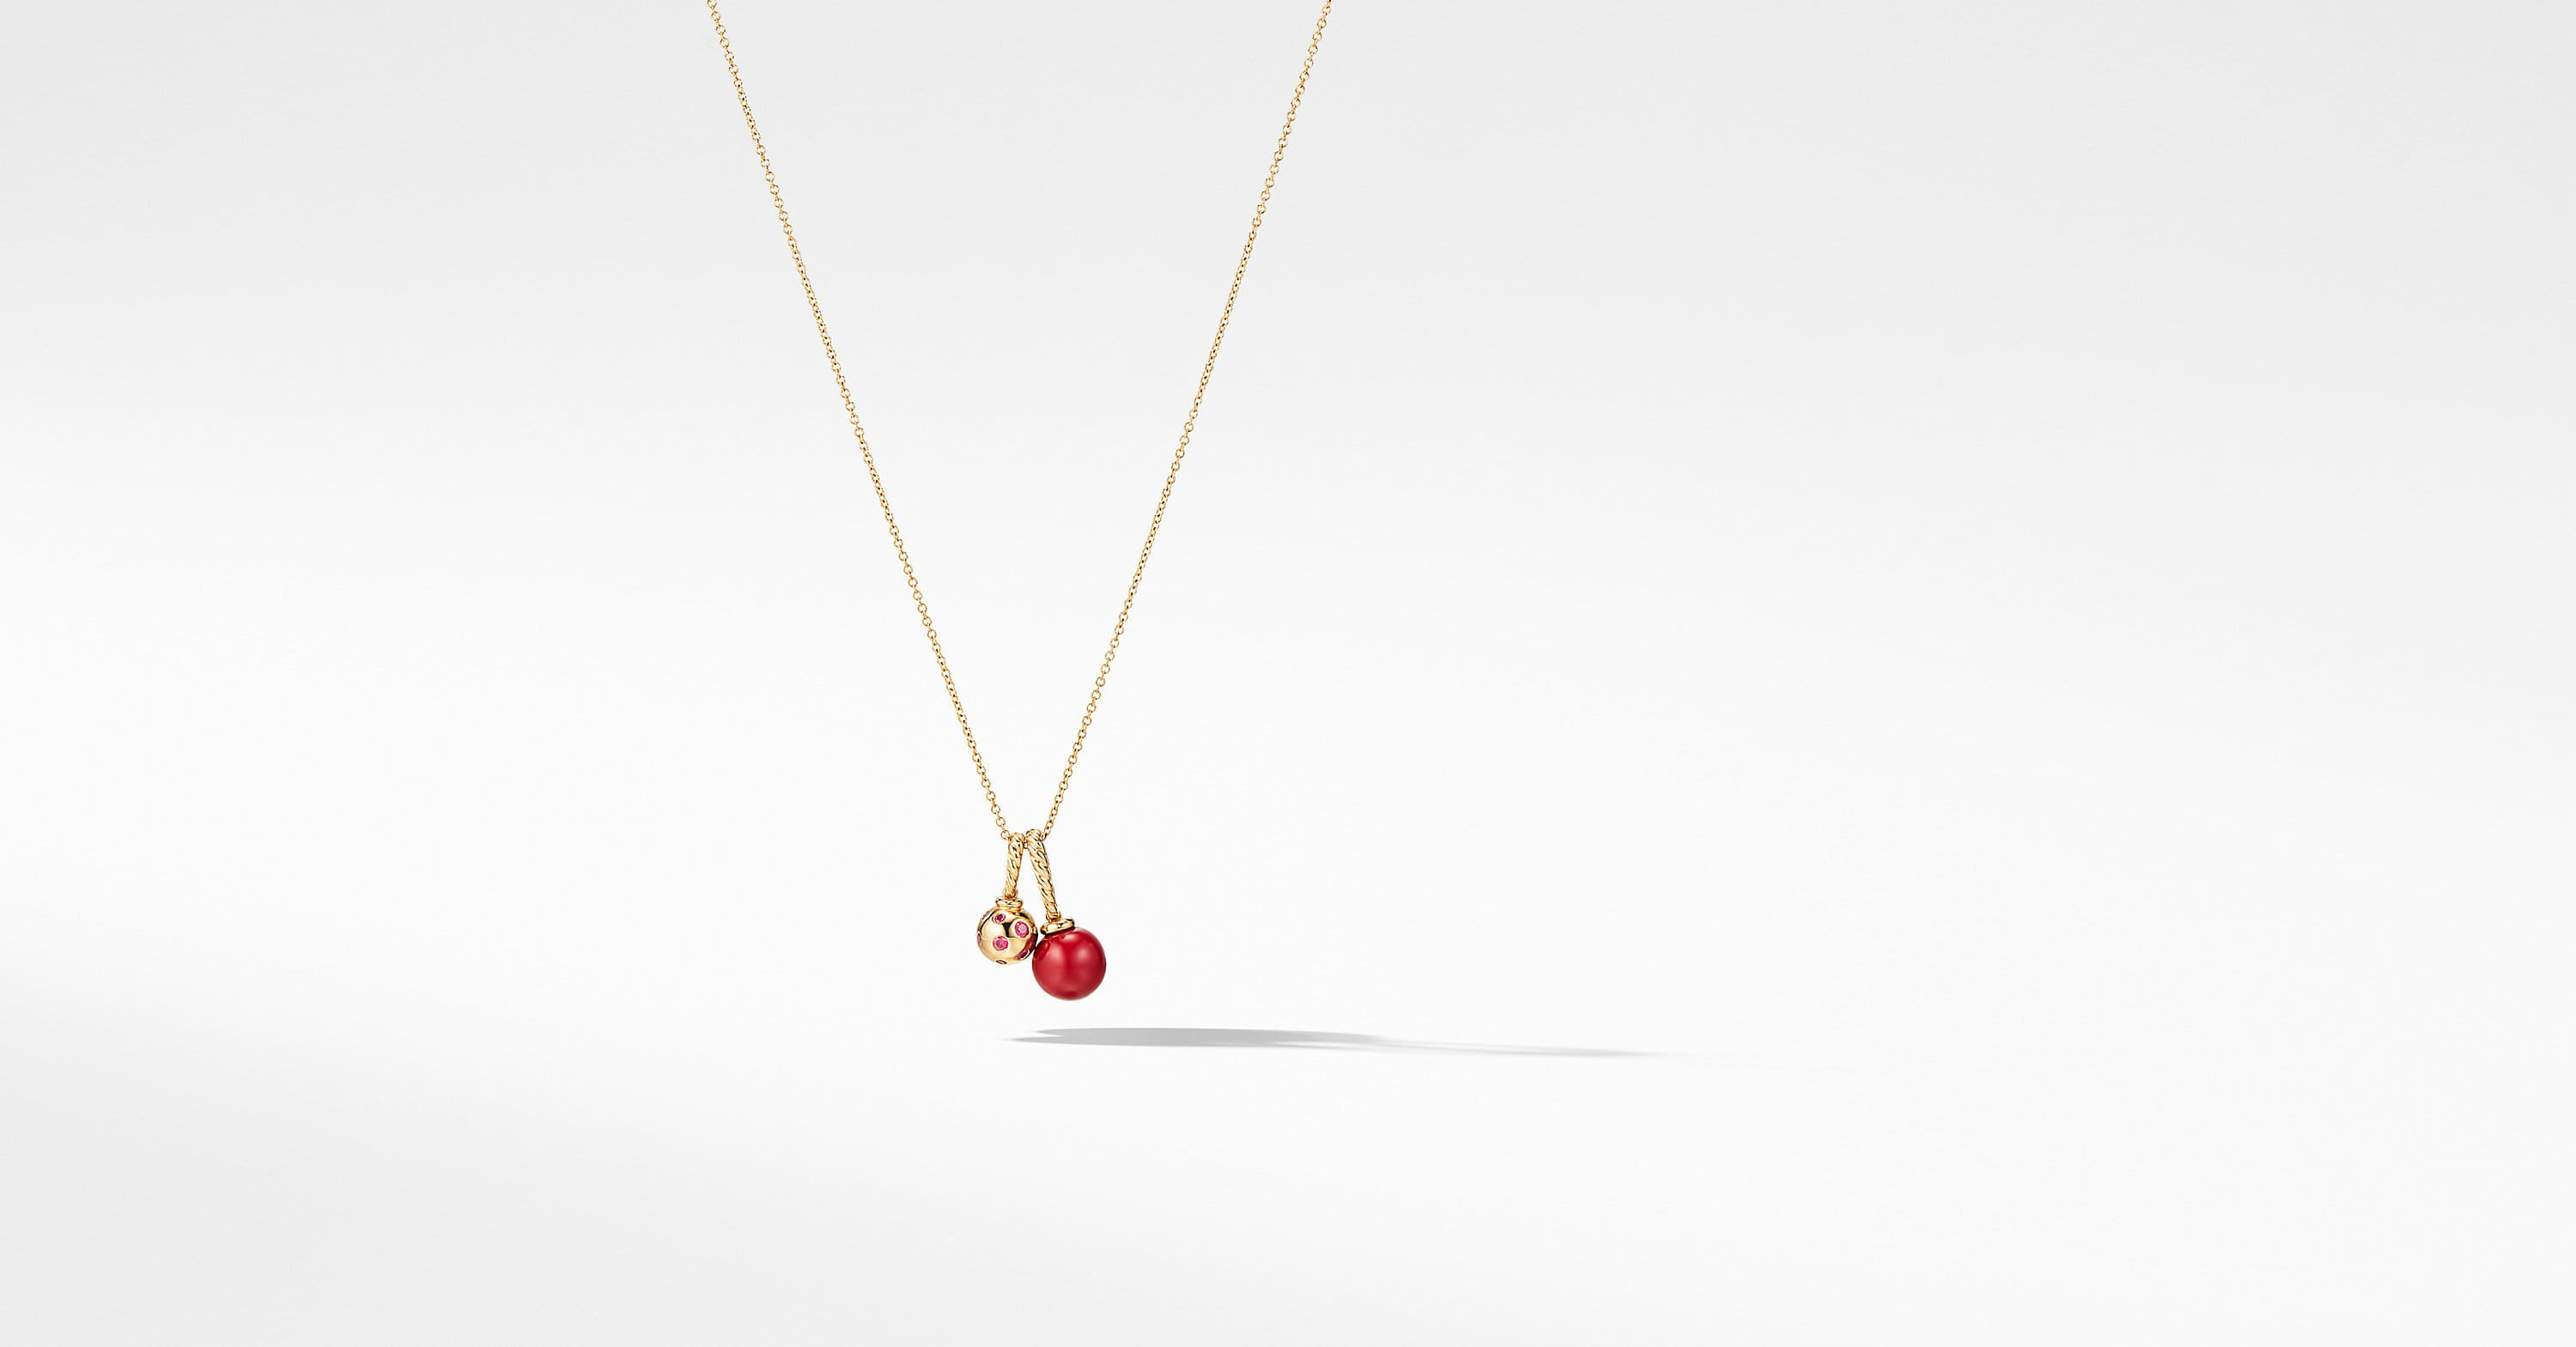 Solari Pendant Necklace in 18K Gold